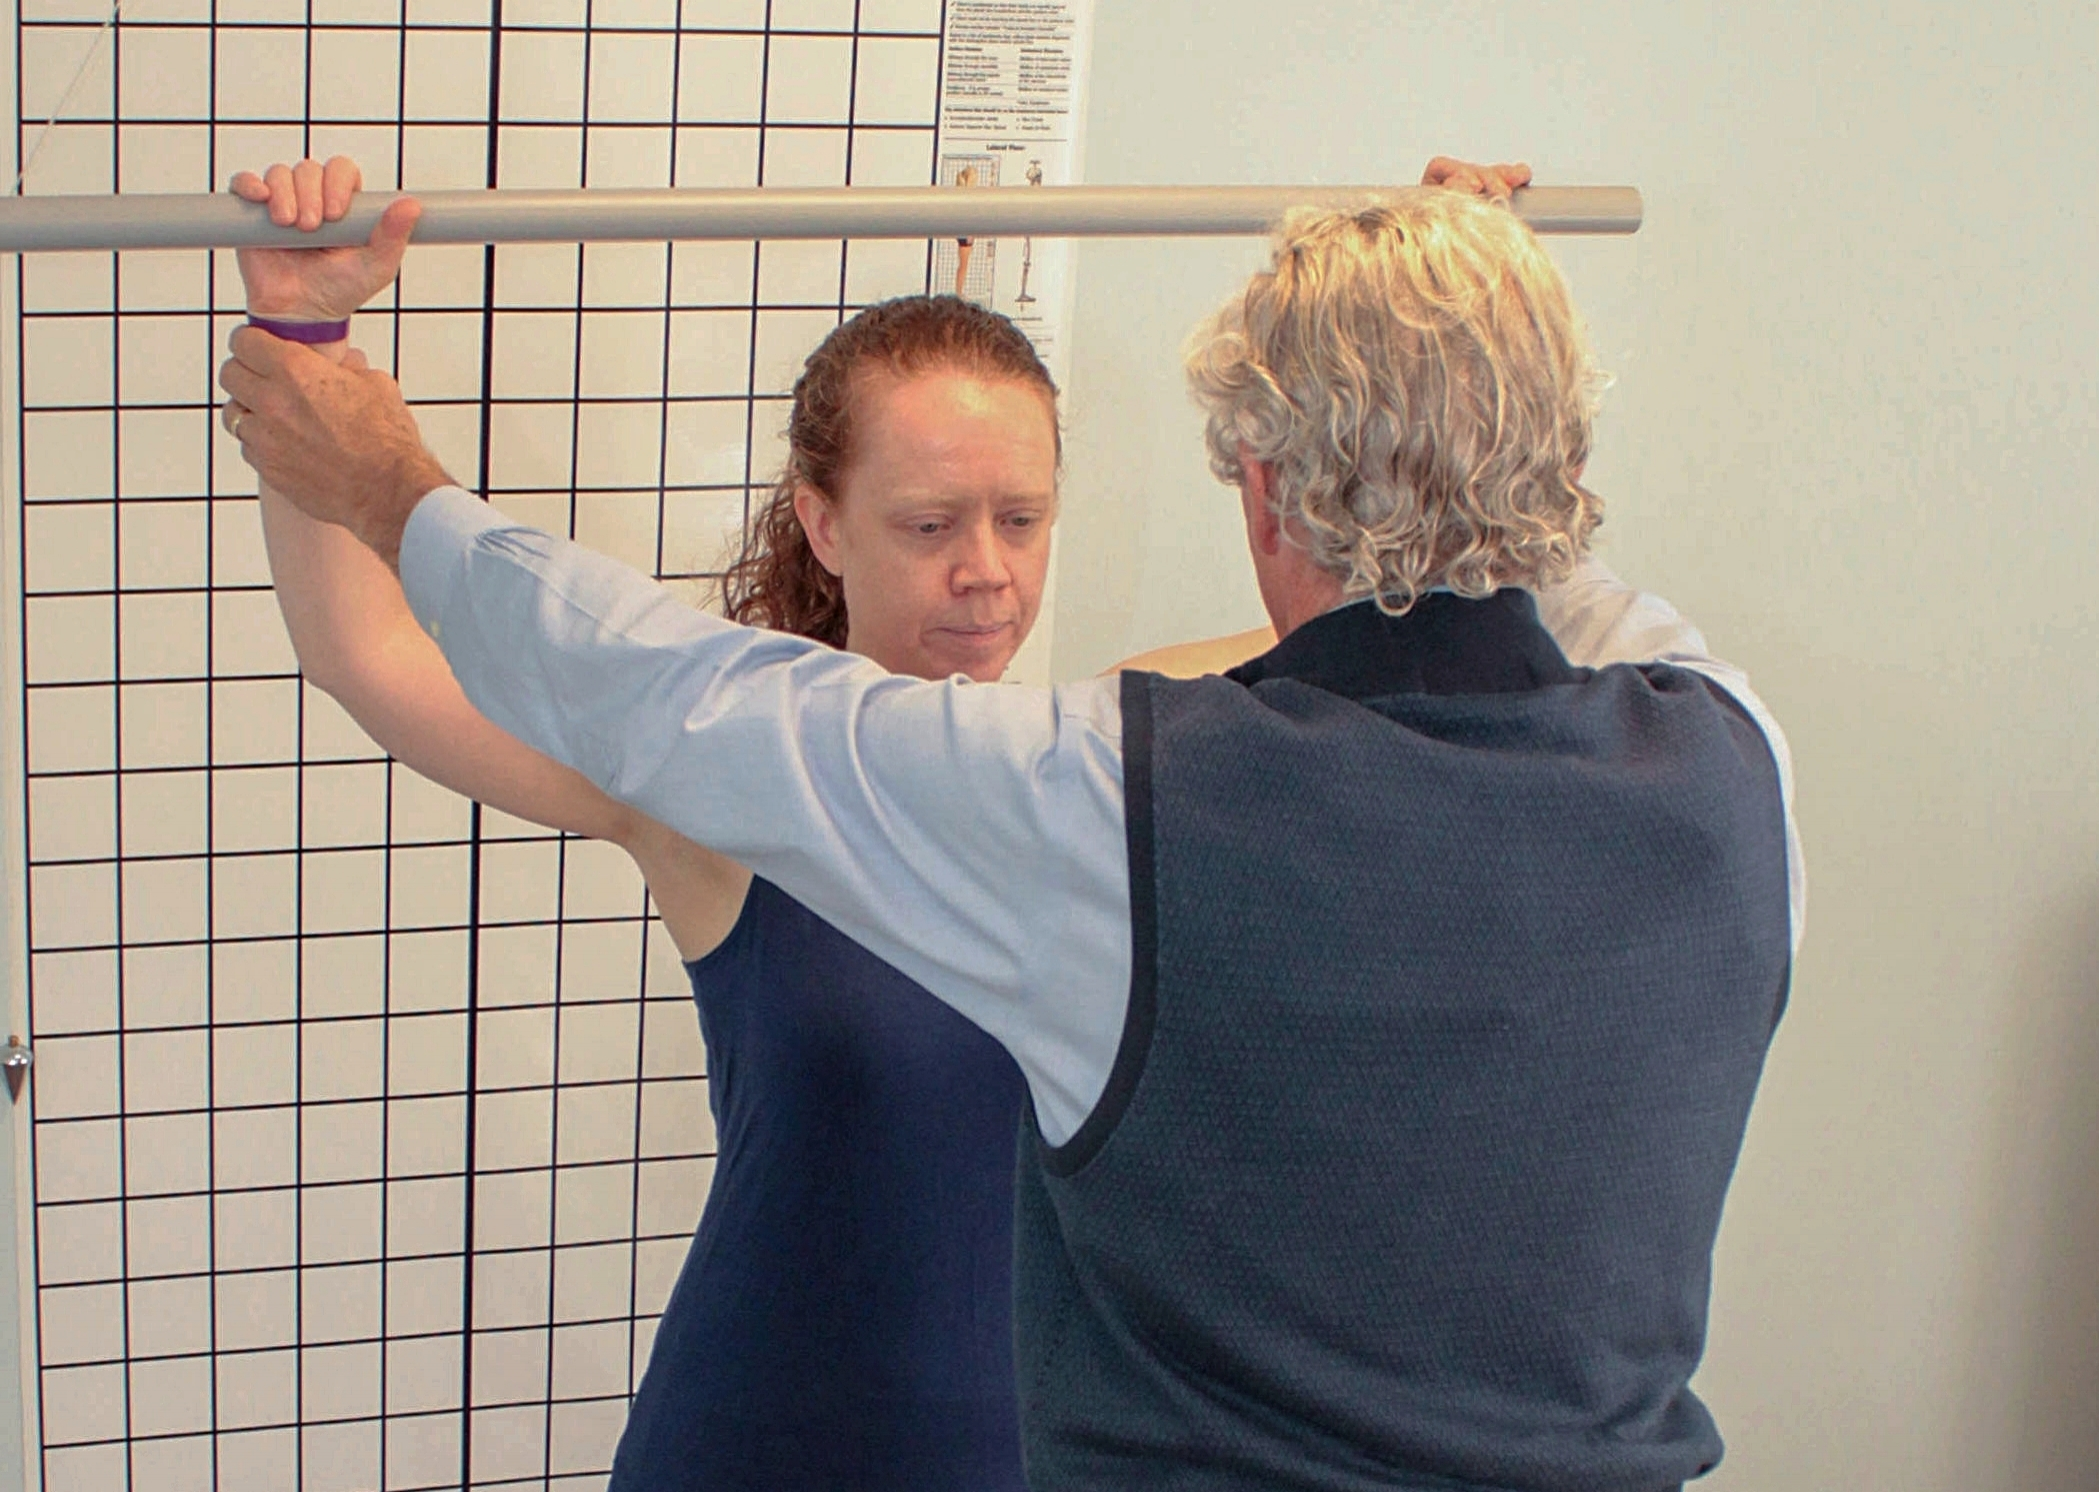 corrective-movement-massage-therapy-in-waltham-ma.jpg